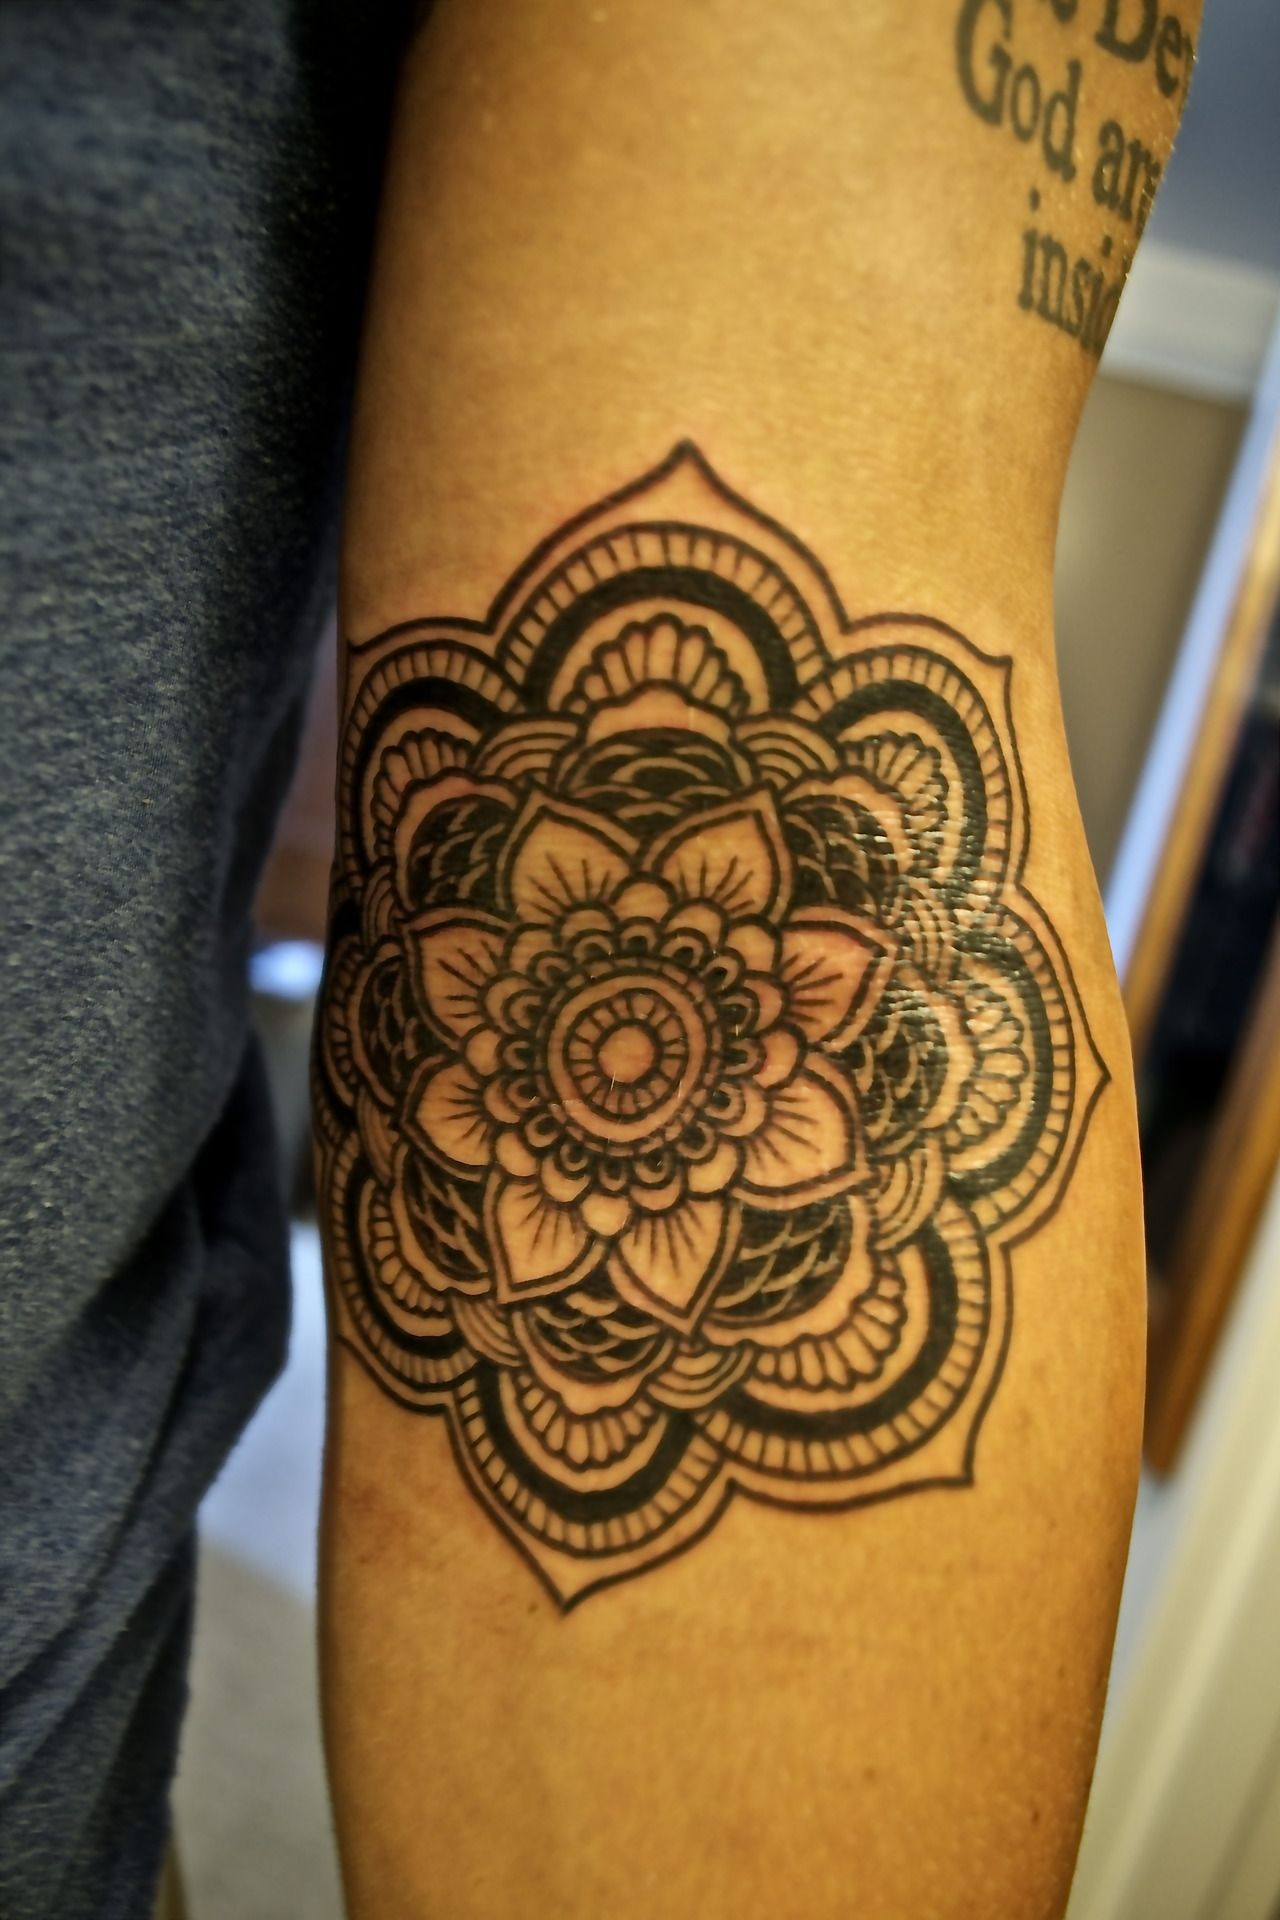 Top 10 lotus flower tattoo designs tattoo pinterest thumb mandala piece a buddhist symbol for creation and harmony done by leo at two thumbs tattoo in pearl city hawaii izmirmasajfo